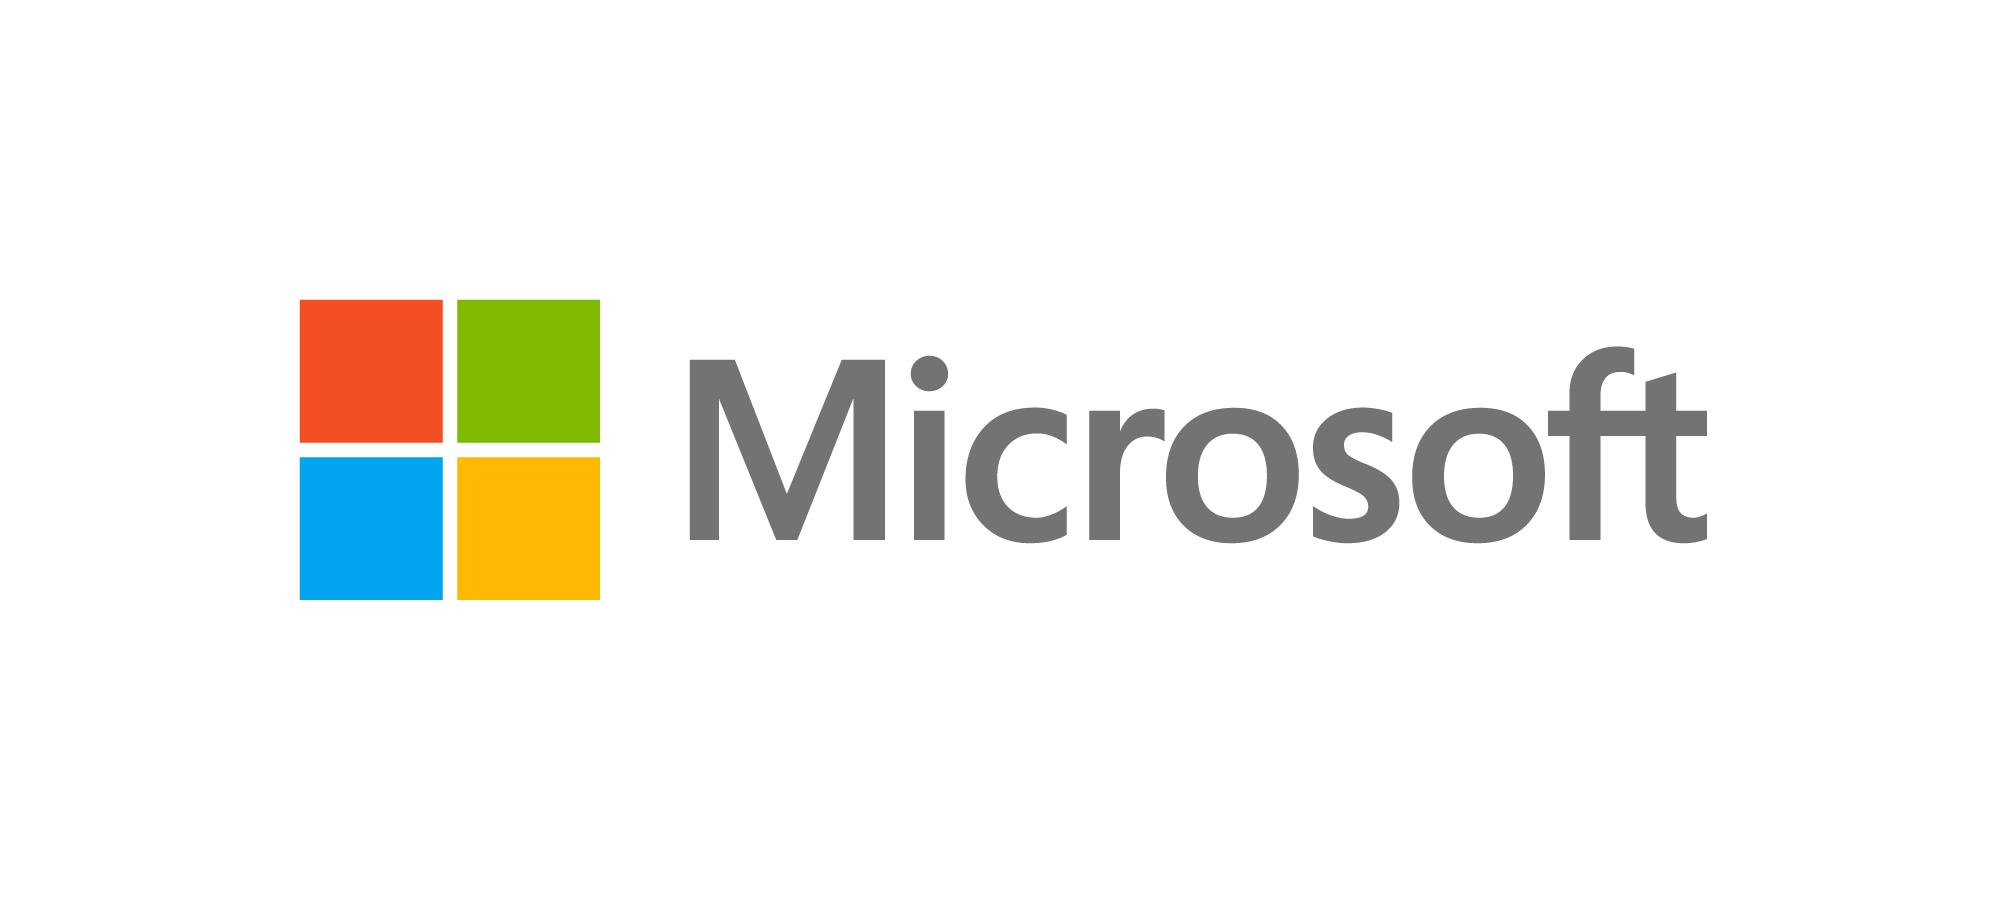 Procurement of Conversational AI and bot development firm XOXCO by Microsoft